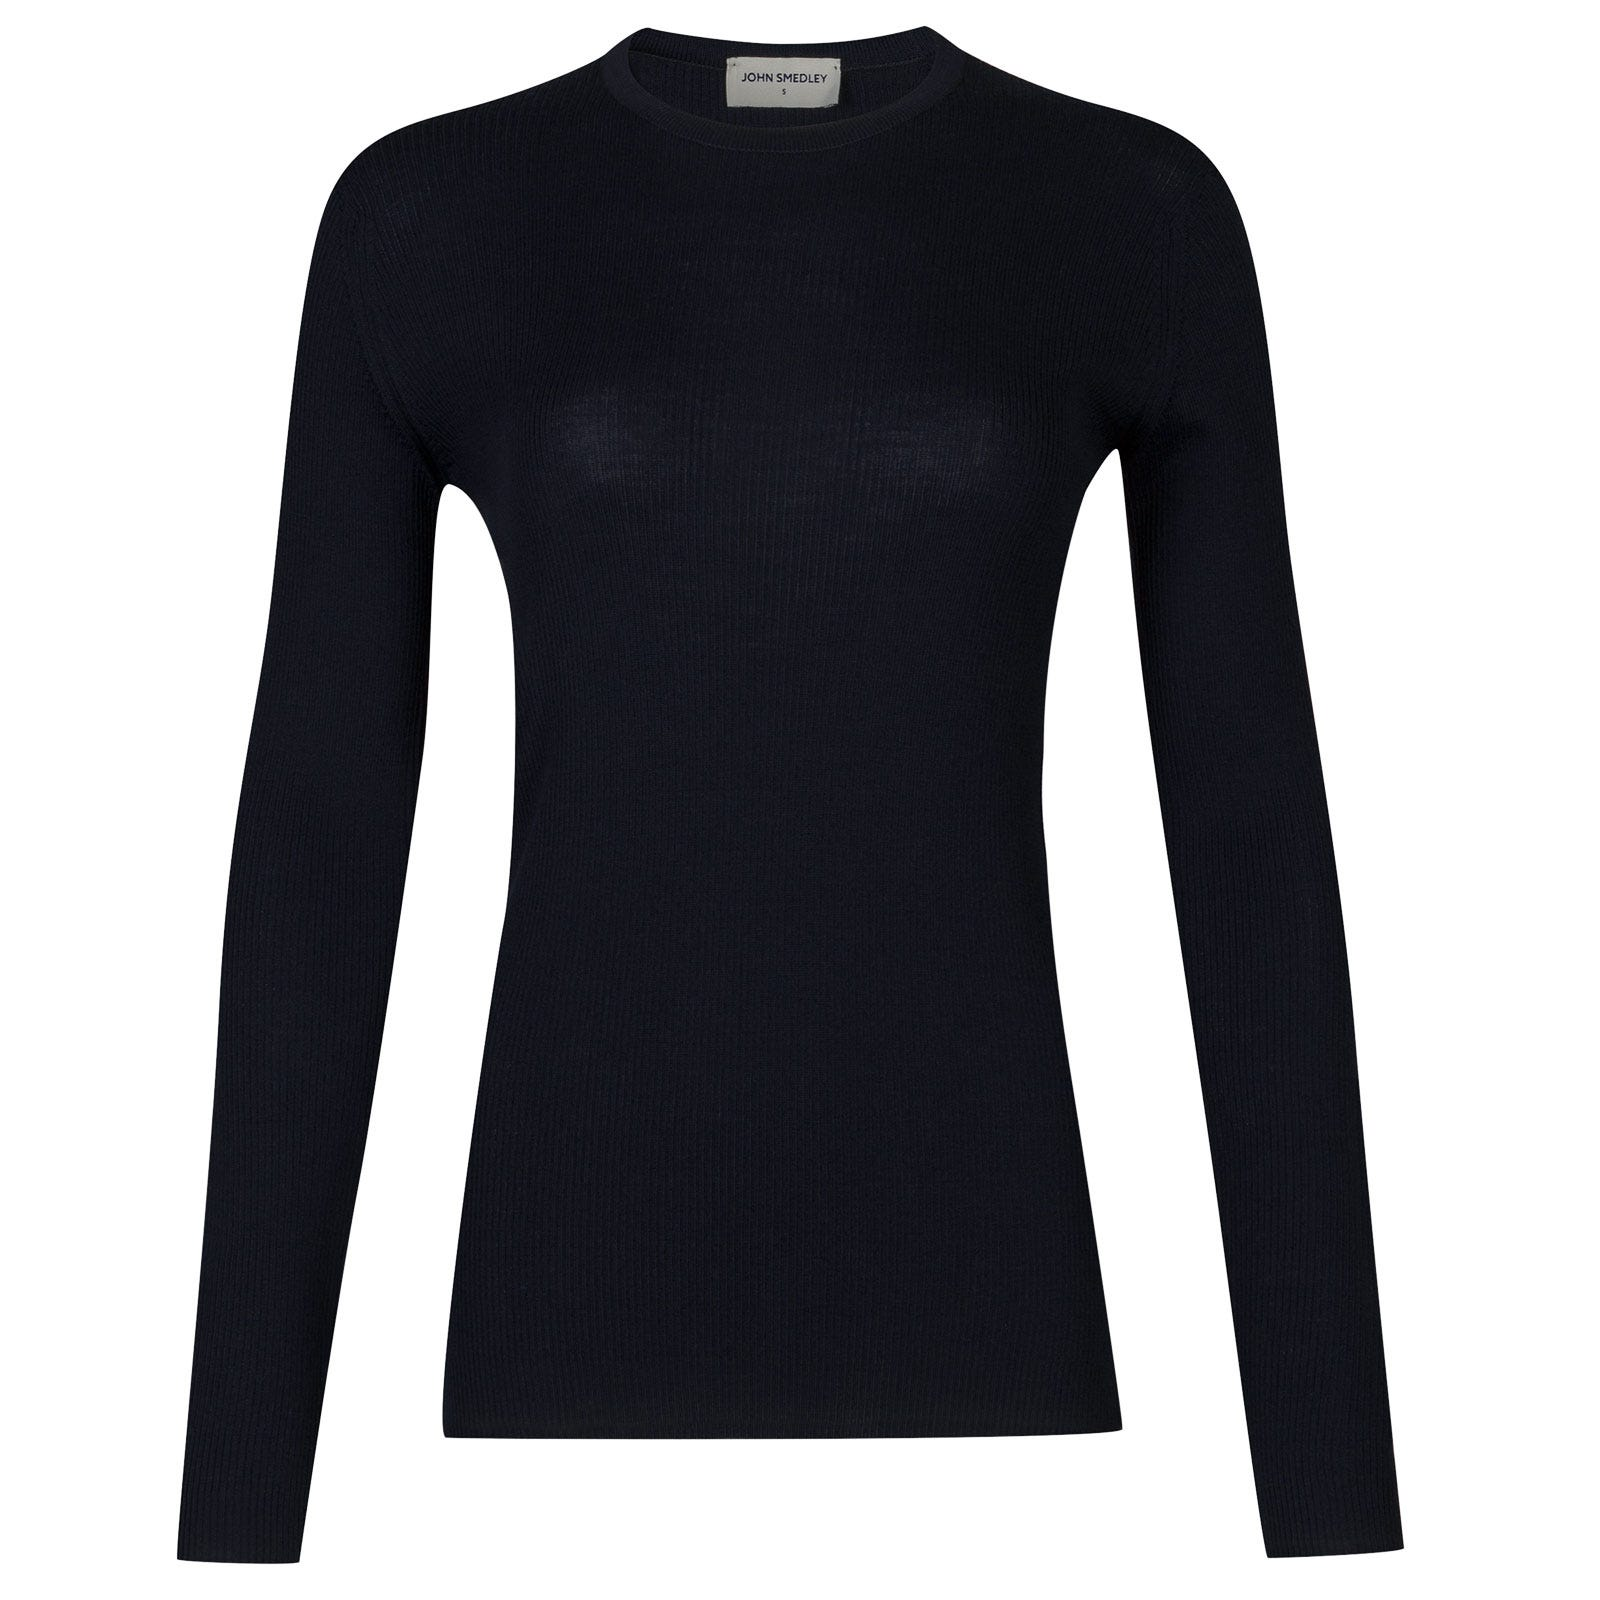 John Smedley corey Merino Wool Sweater in Midnight-XL